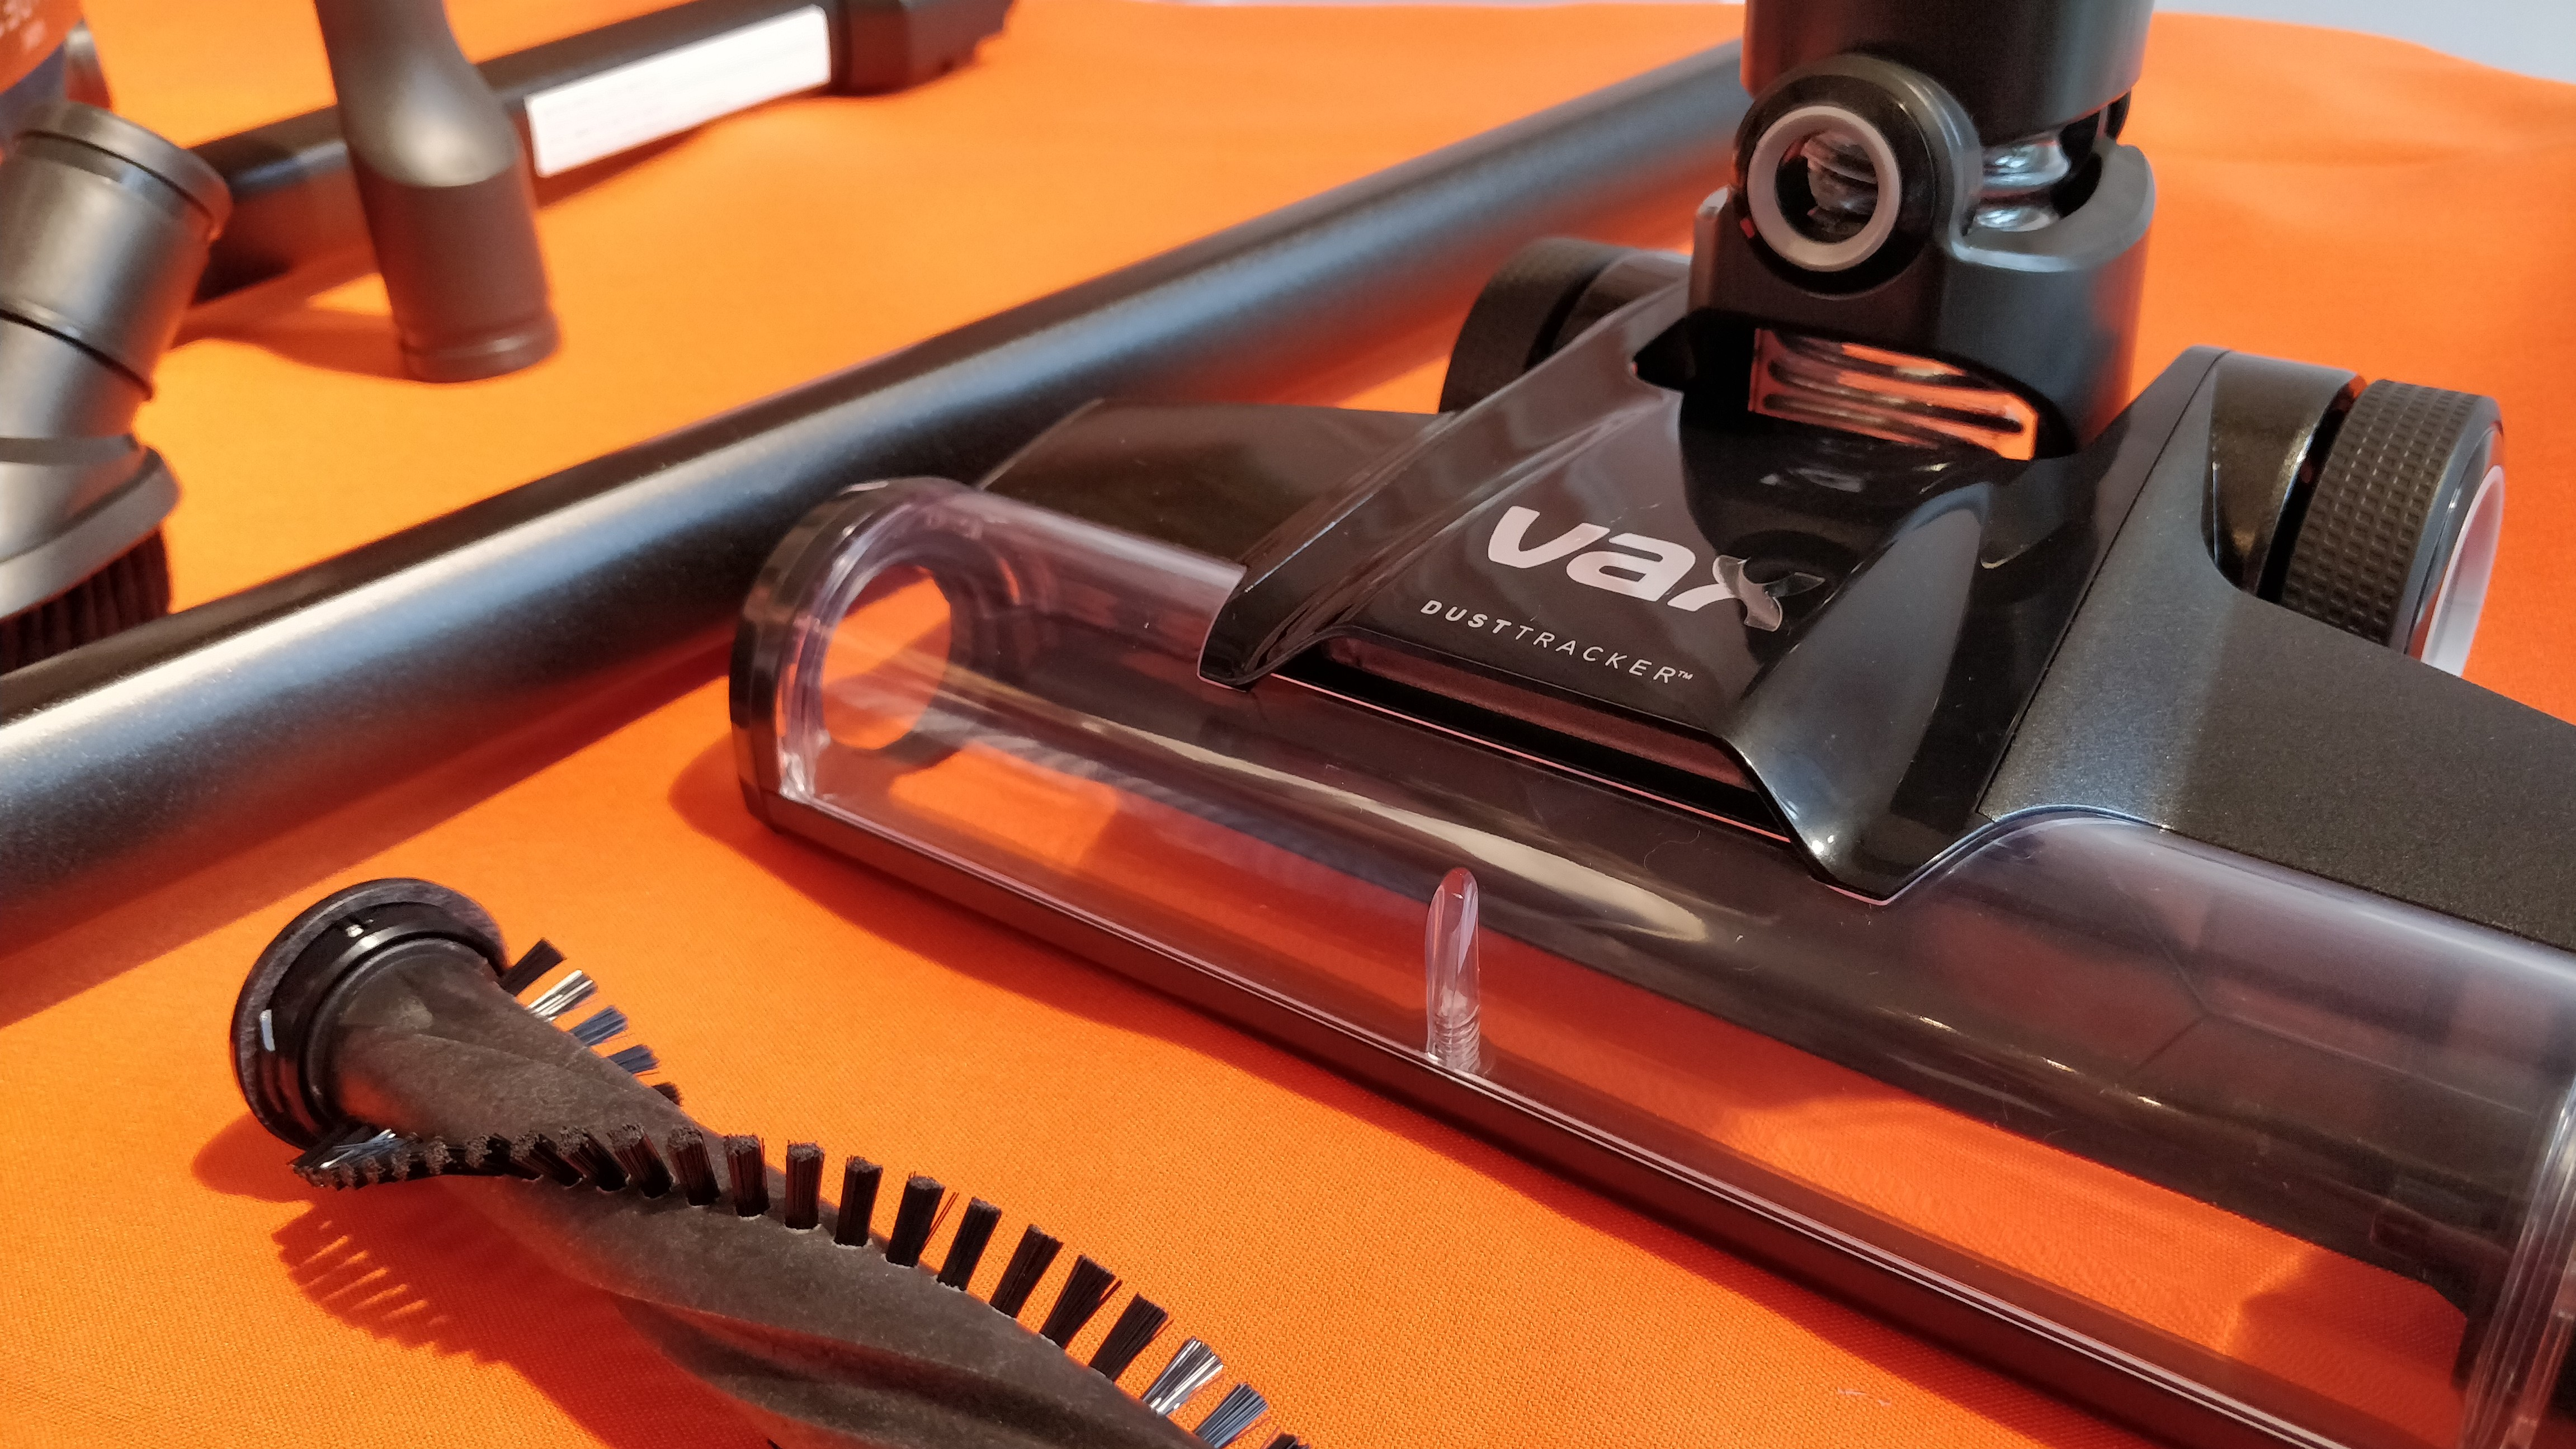 Vax Blade 2 Max review